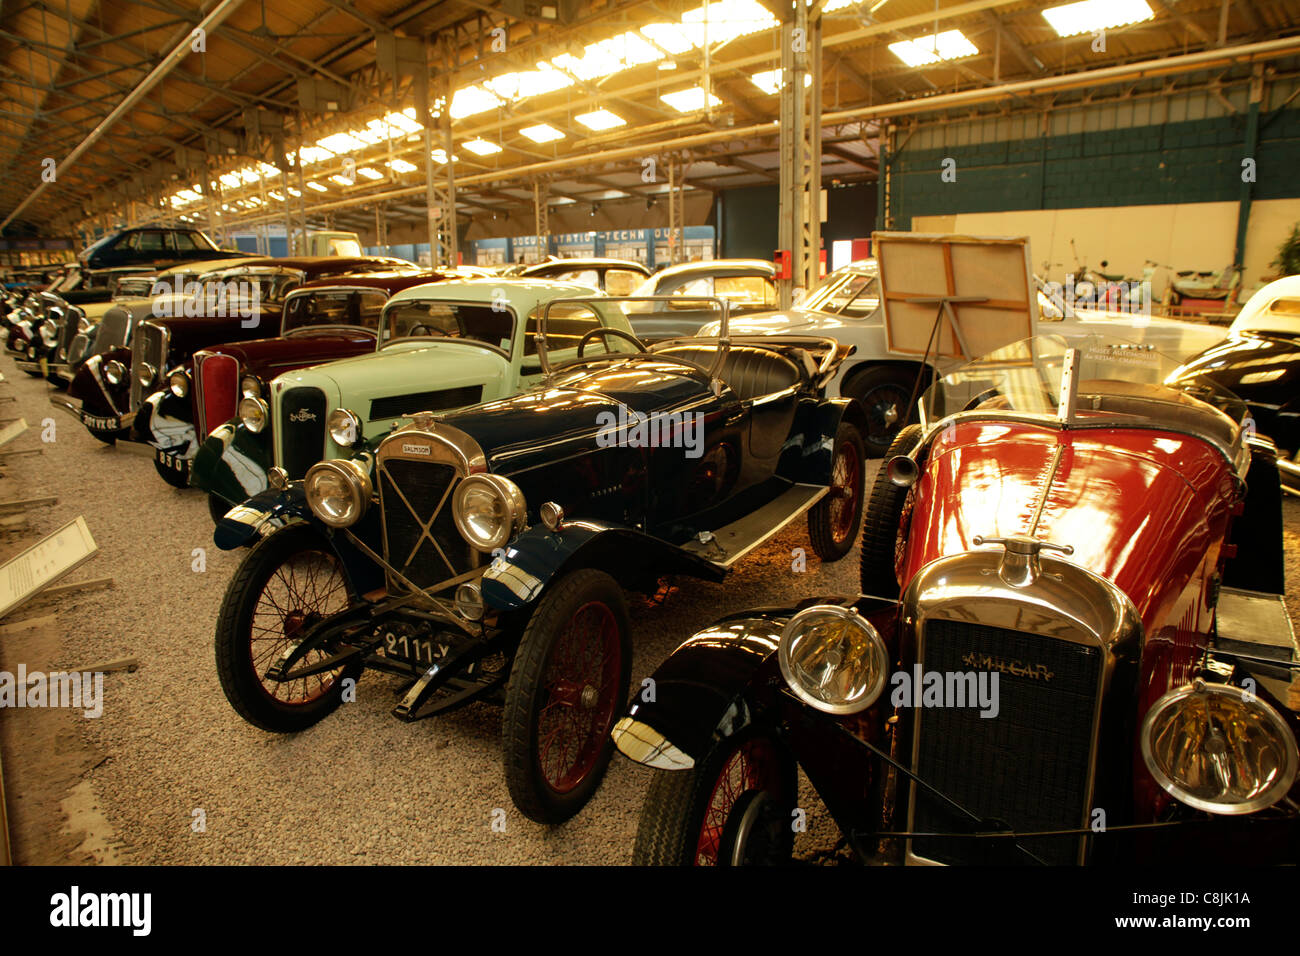 reims champagne automobile automuseum in reims frankreich mus e automobil reims champagne. Black Bedroom Furniture Sets. Home Design Ideas